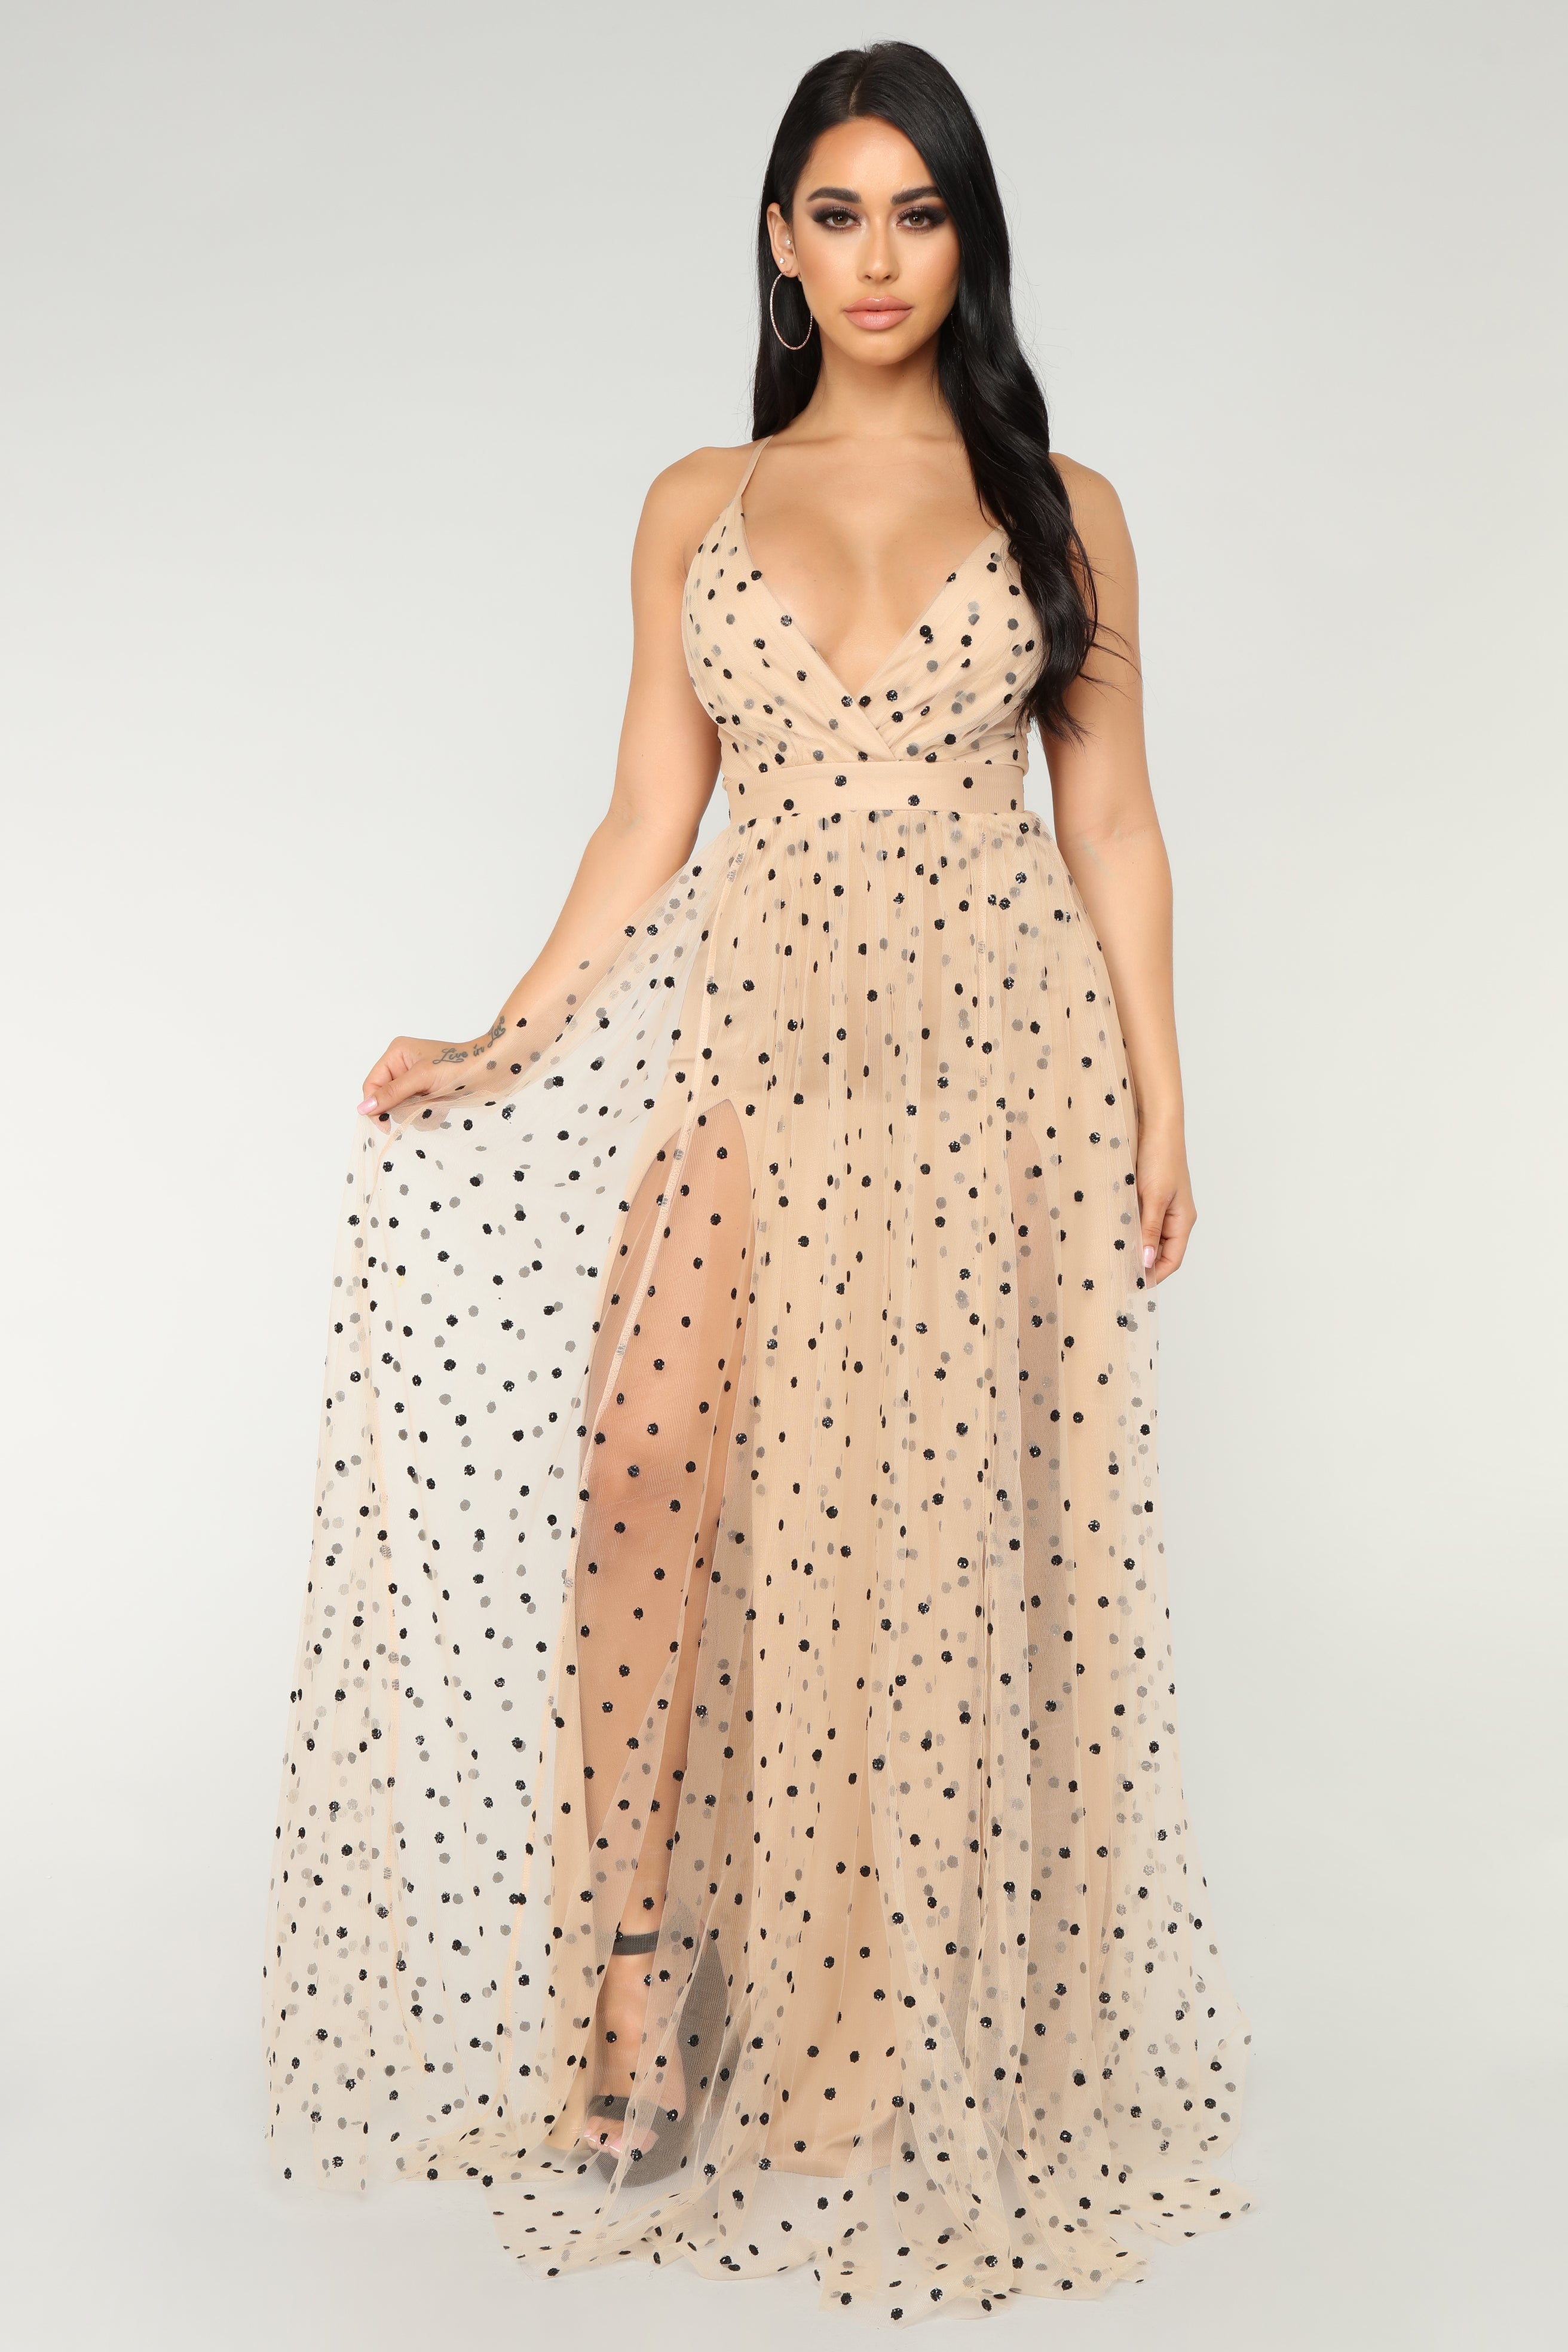 Polka Dot Frenzy Maxi Dress - Nude-7304